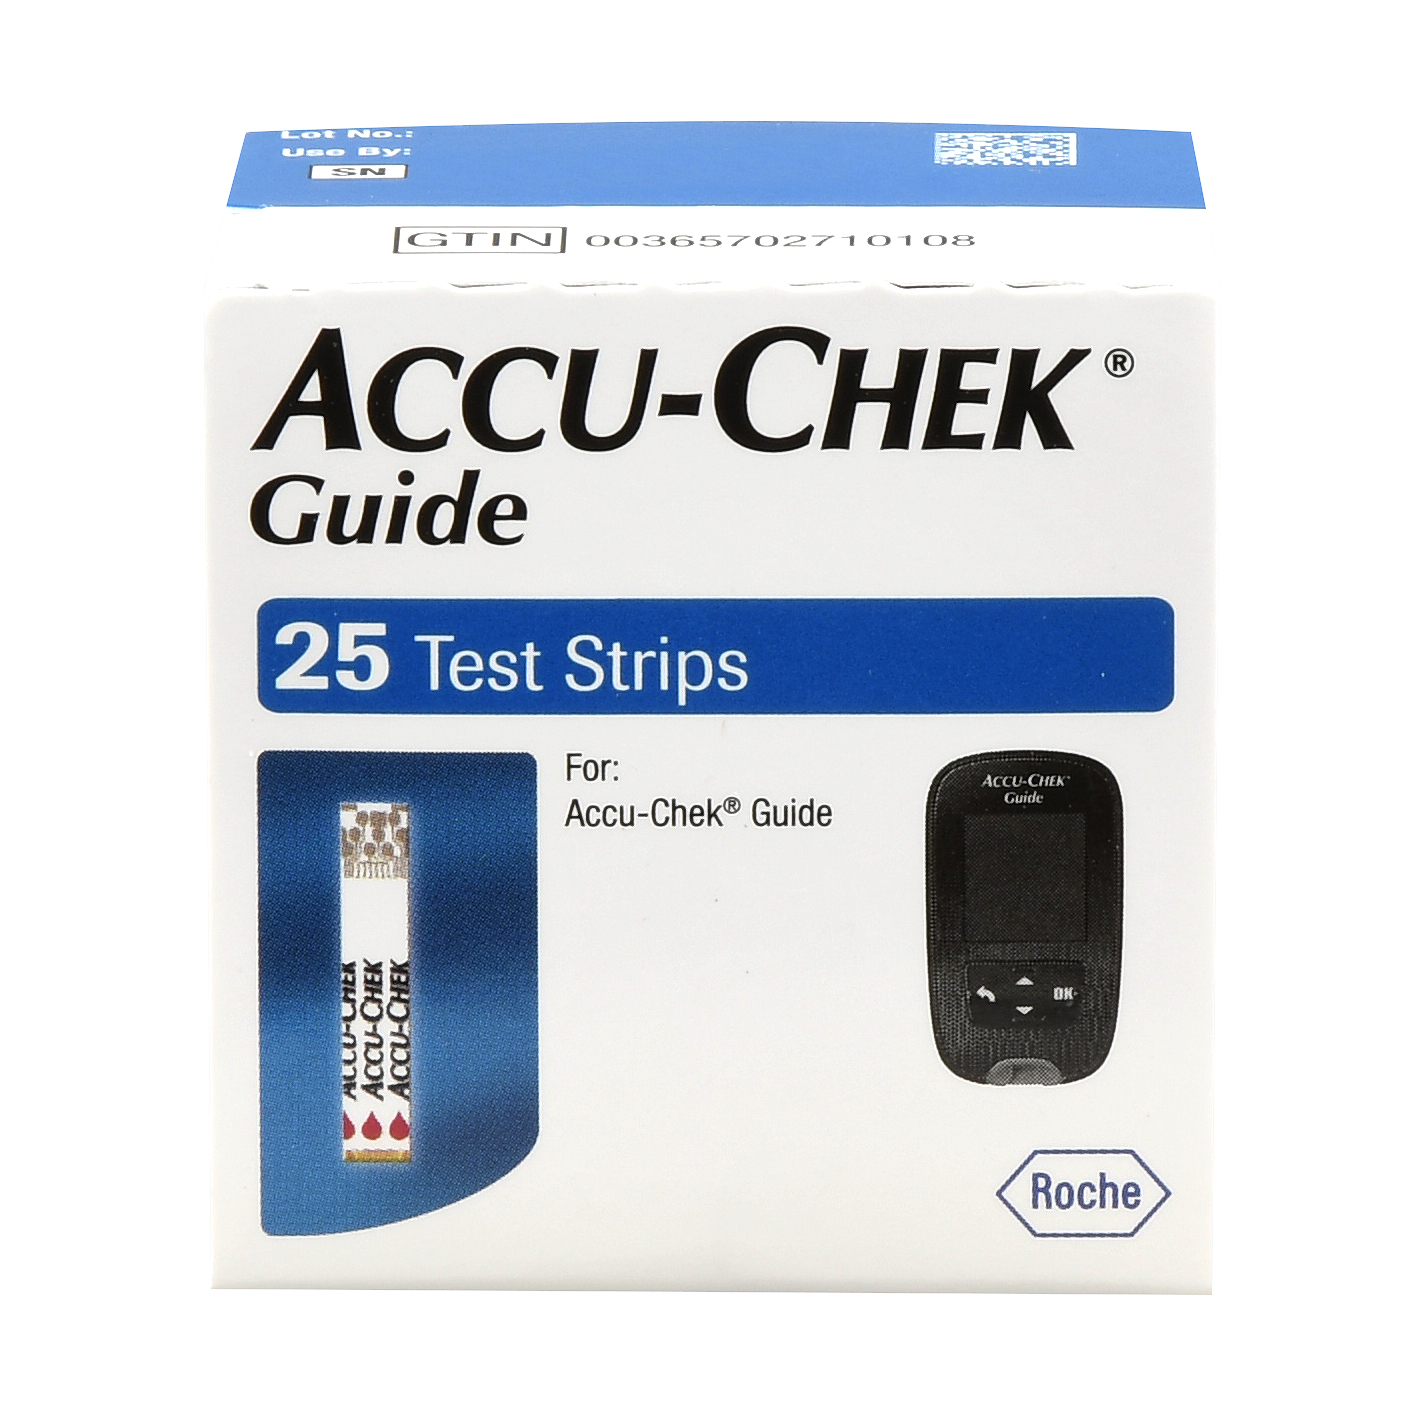 Accu-Chek Guide 25ct Test Strips